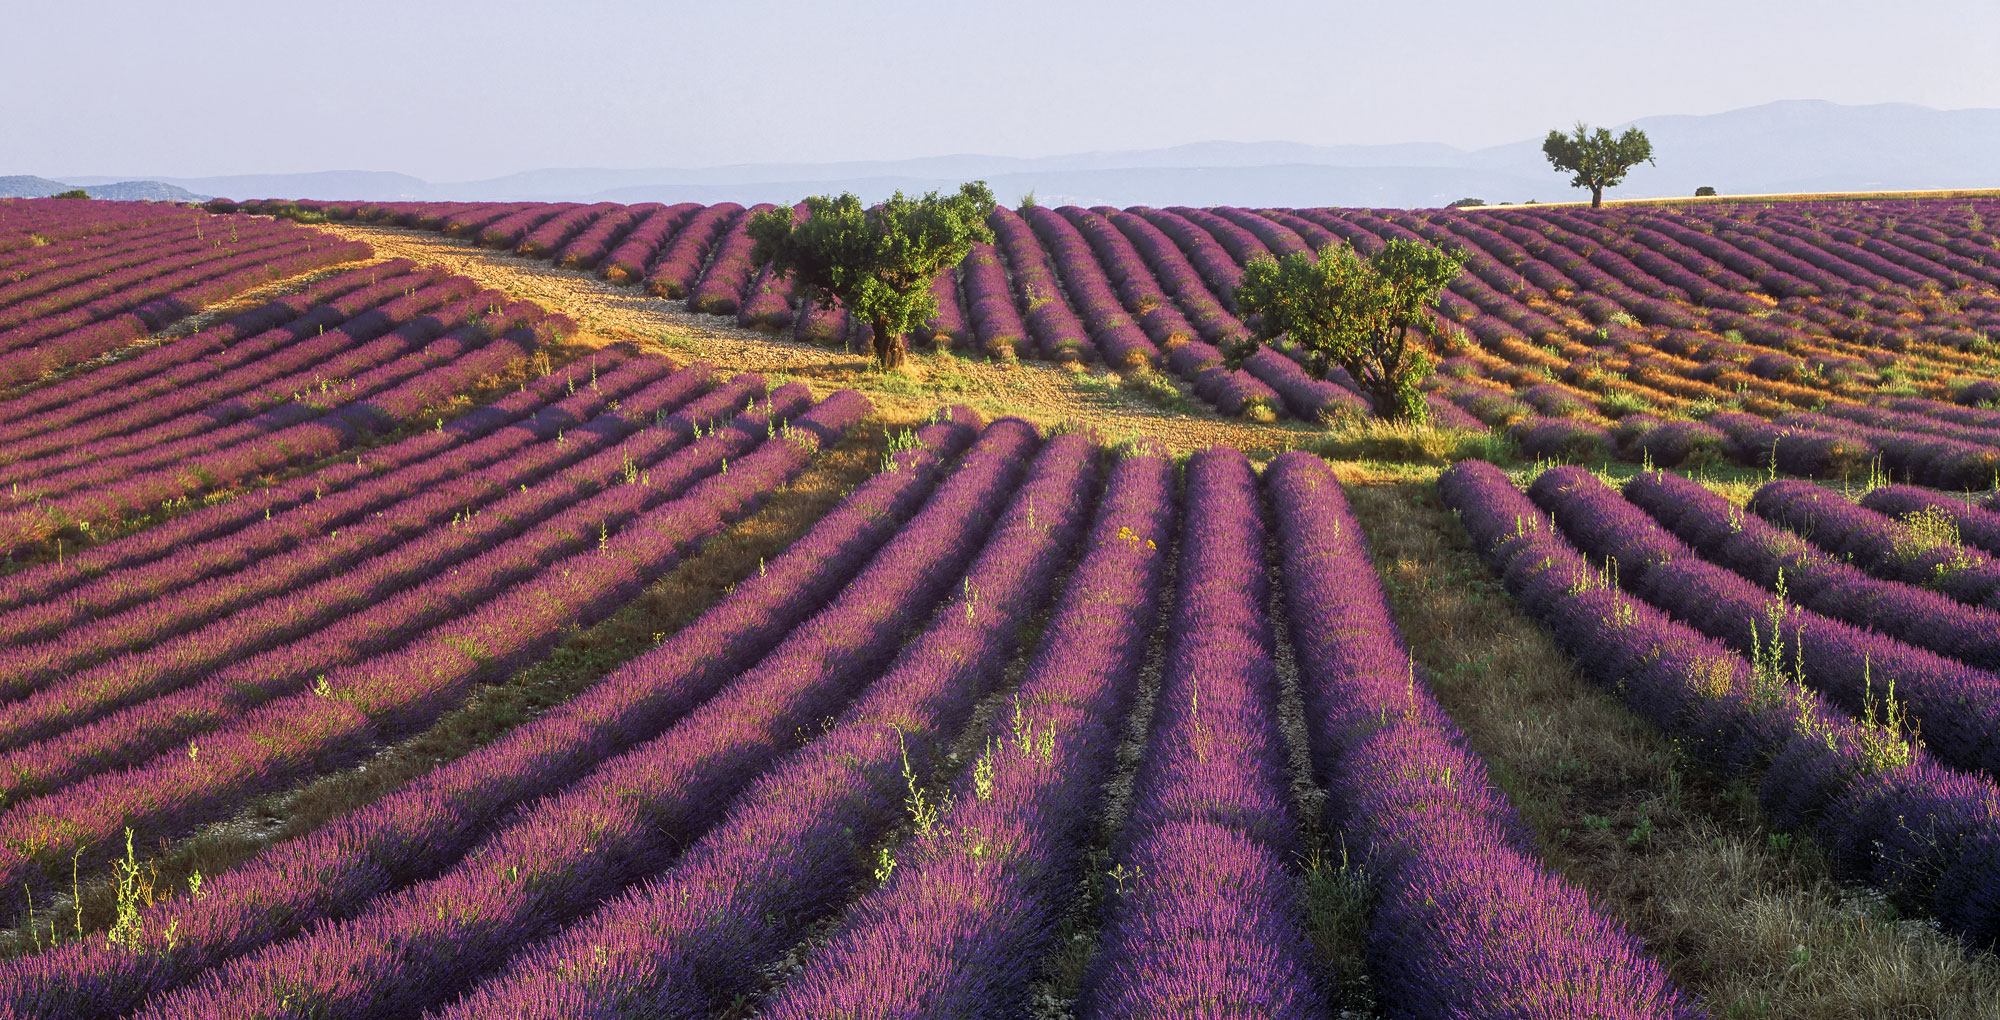 Lavender Pink Pano, Valensole, Provence, France, plateau, pink, violet, infra red, sunlit, lavender, reflected, intersecting, lines, blue, grazing, sunlight, photo